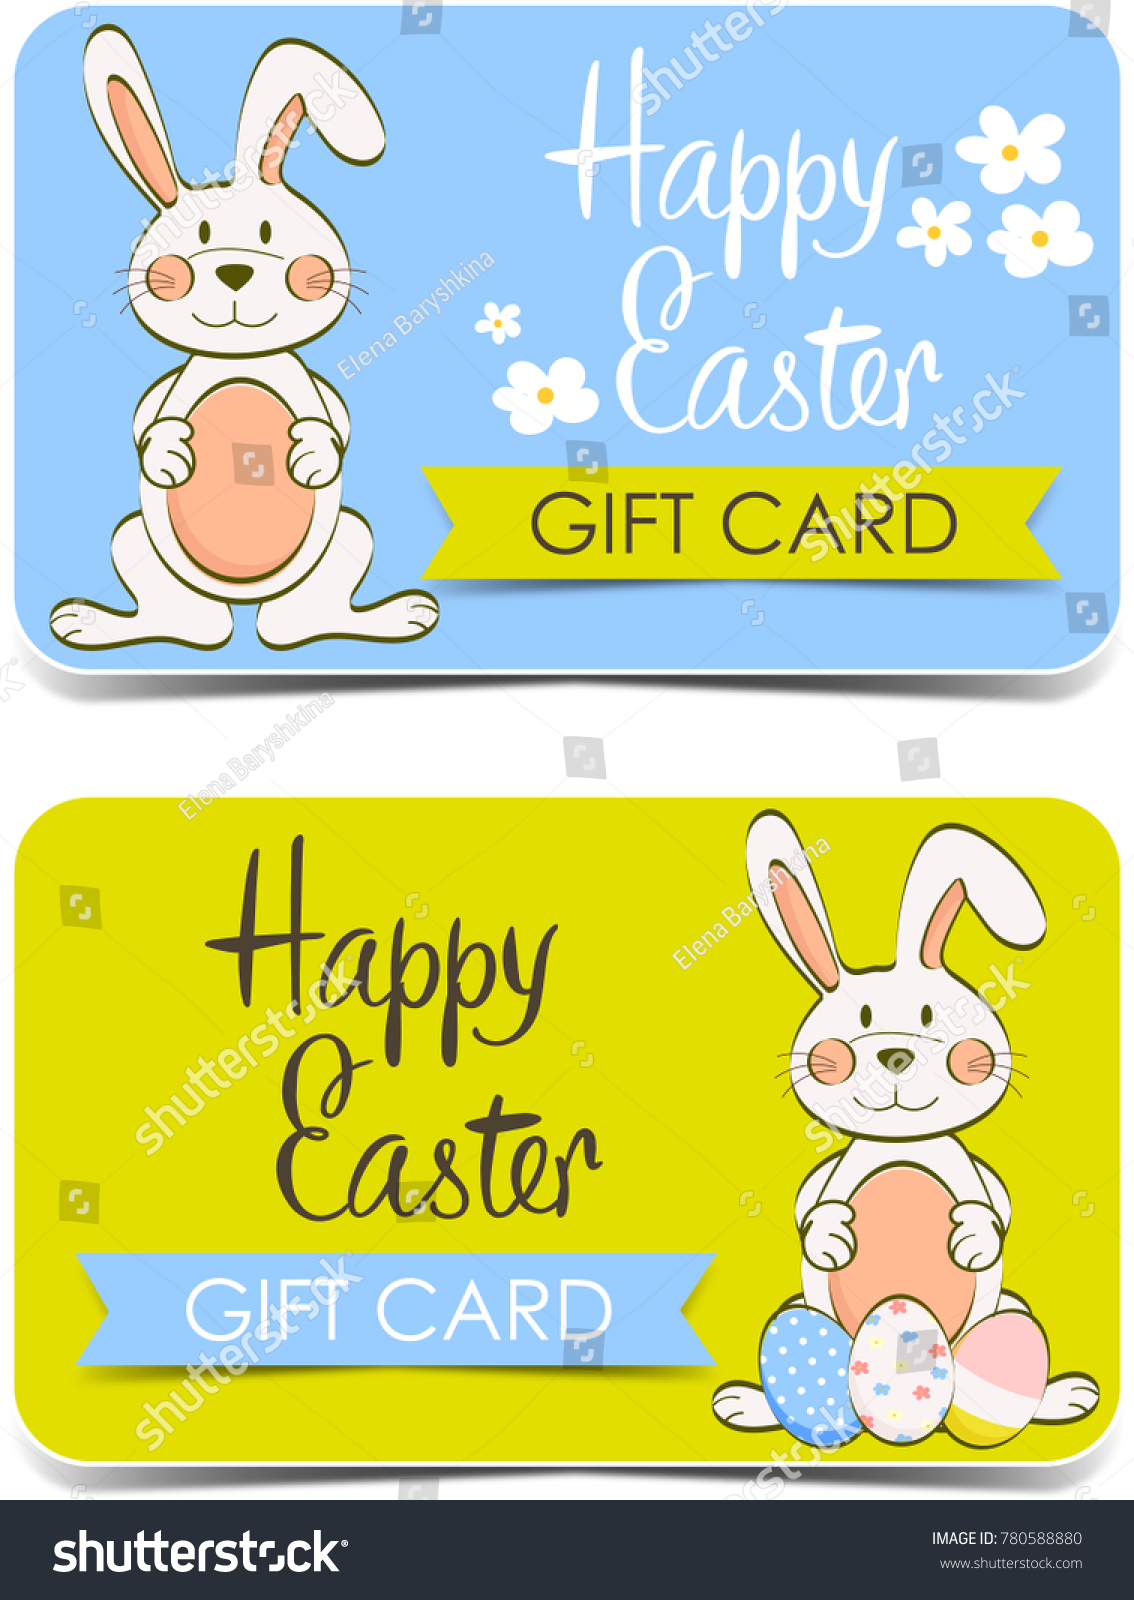 Happy easter gift card cute bunny stock illustration 780588880 happy easter gift card cute bunny negle Image collections